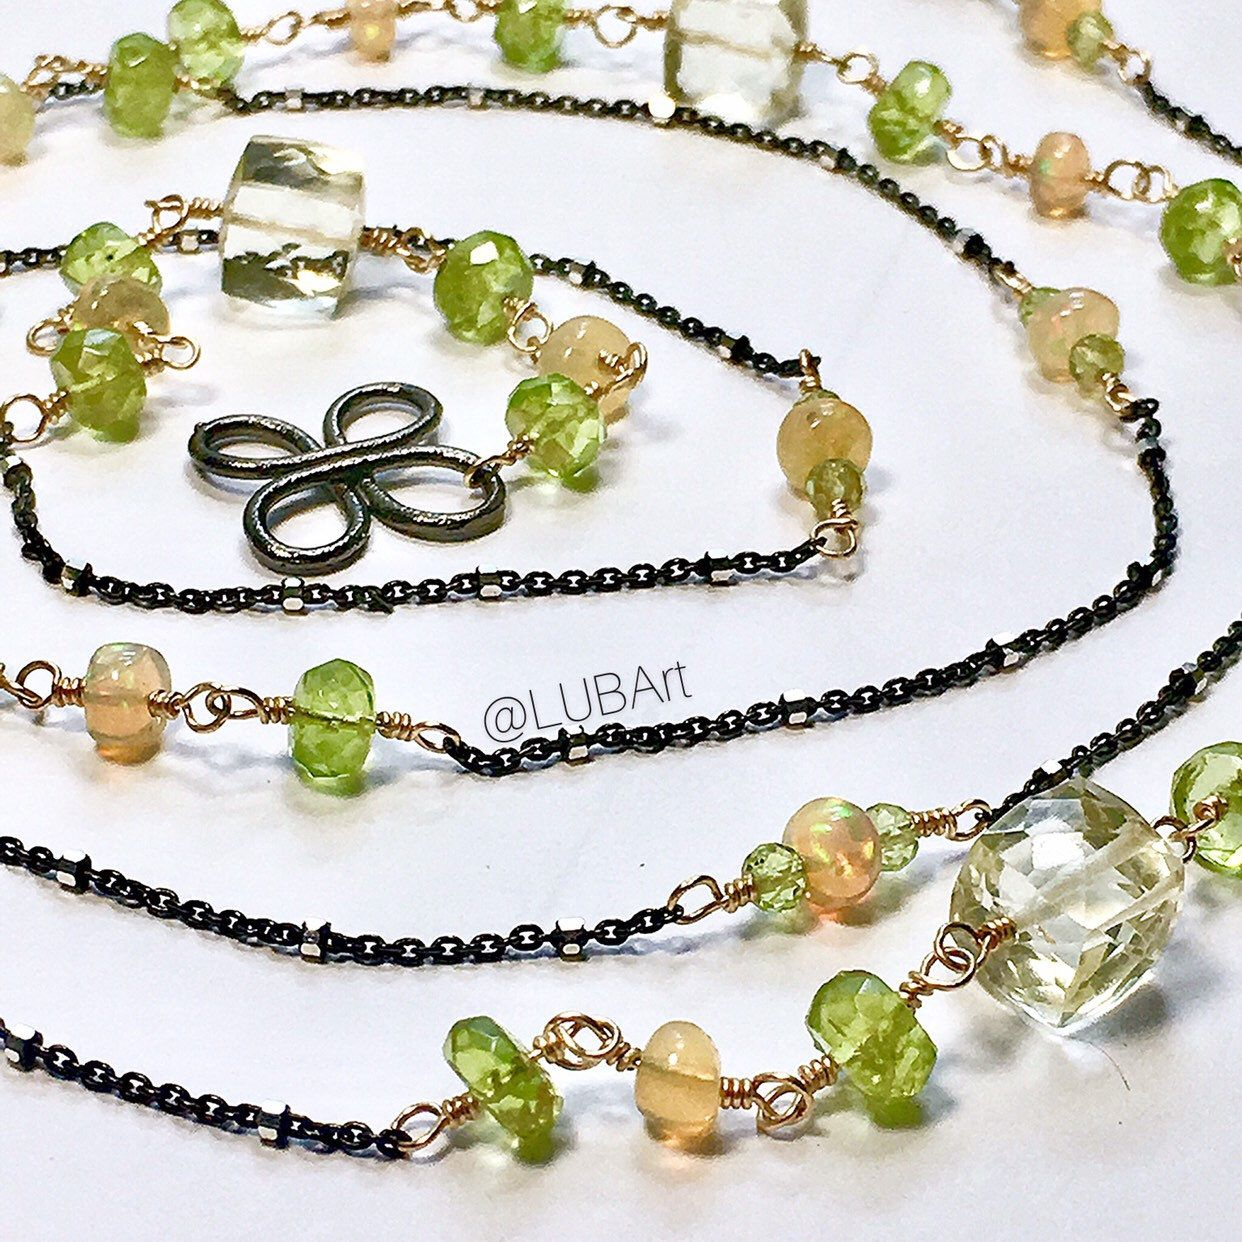 Quartz with Peridot Pendant//Necklace set in sterling silver Mix Sizes